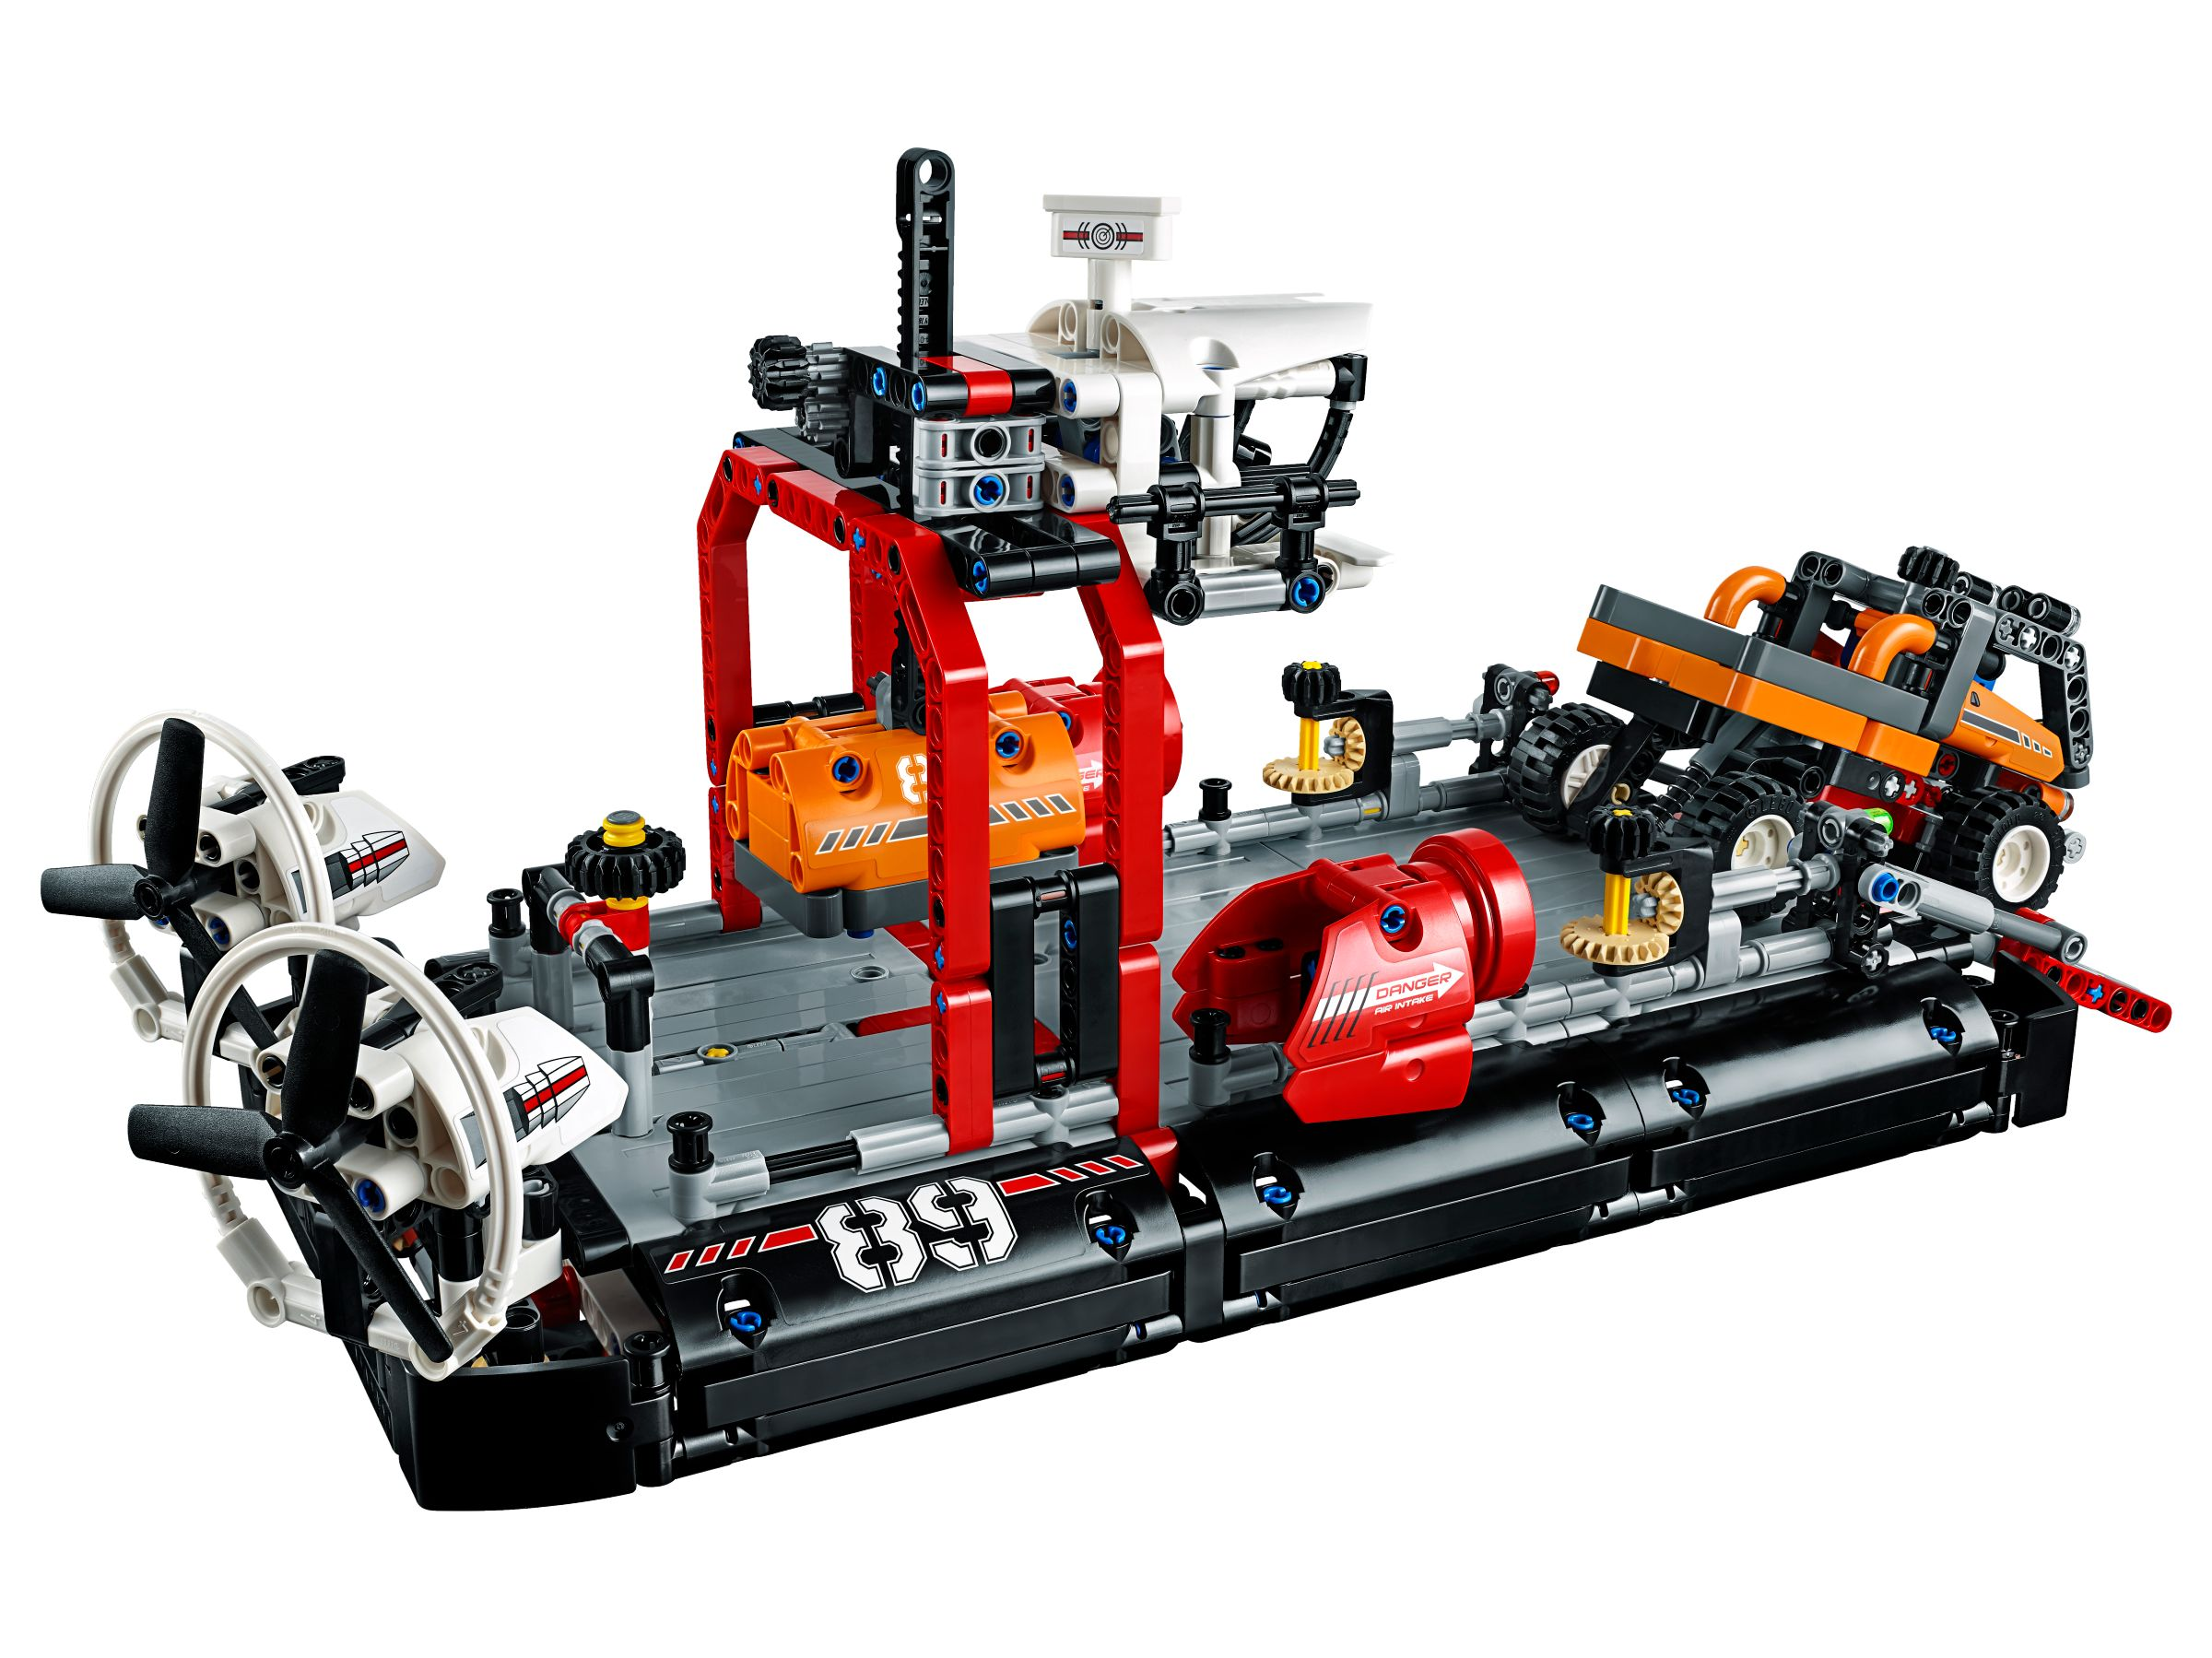 lego 42076 luftkissenboot technic 2018 ab 49 99 29 gespart hovercraft brickmerge. Black Bedroom Furniture Sets. Home Design Ideas